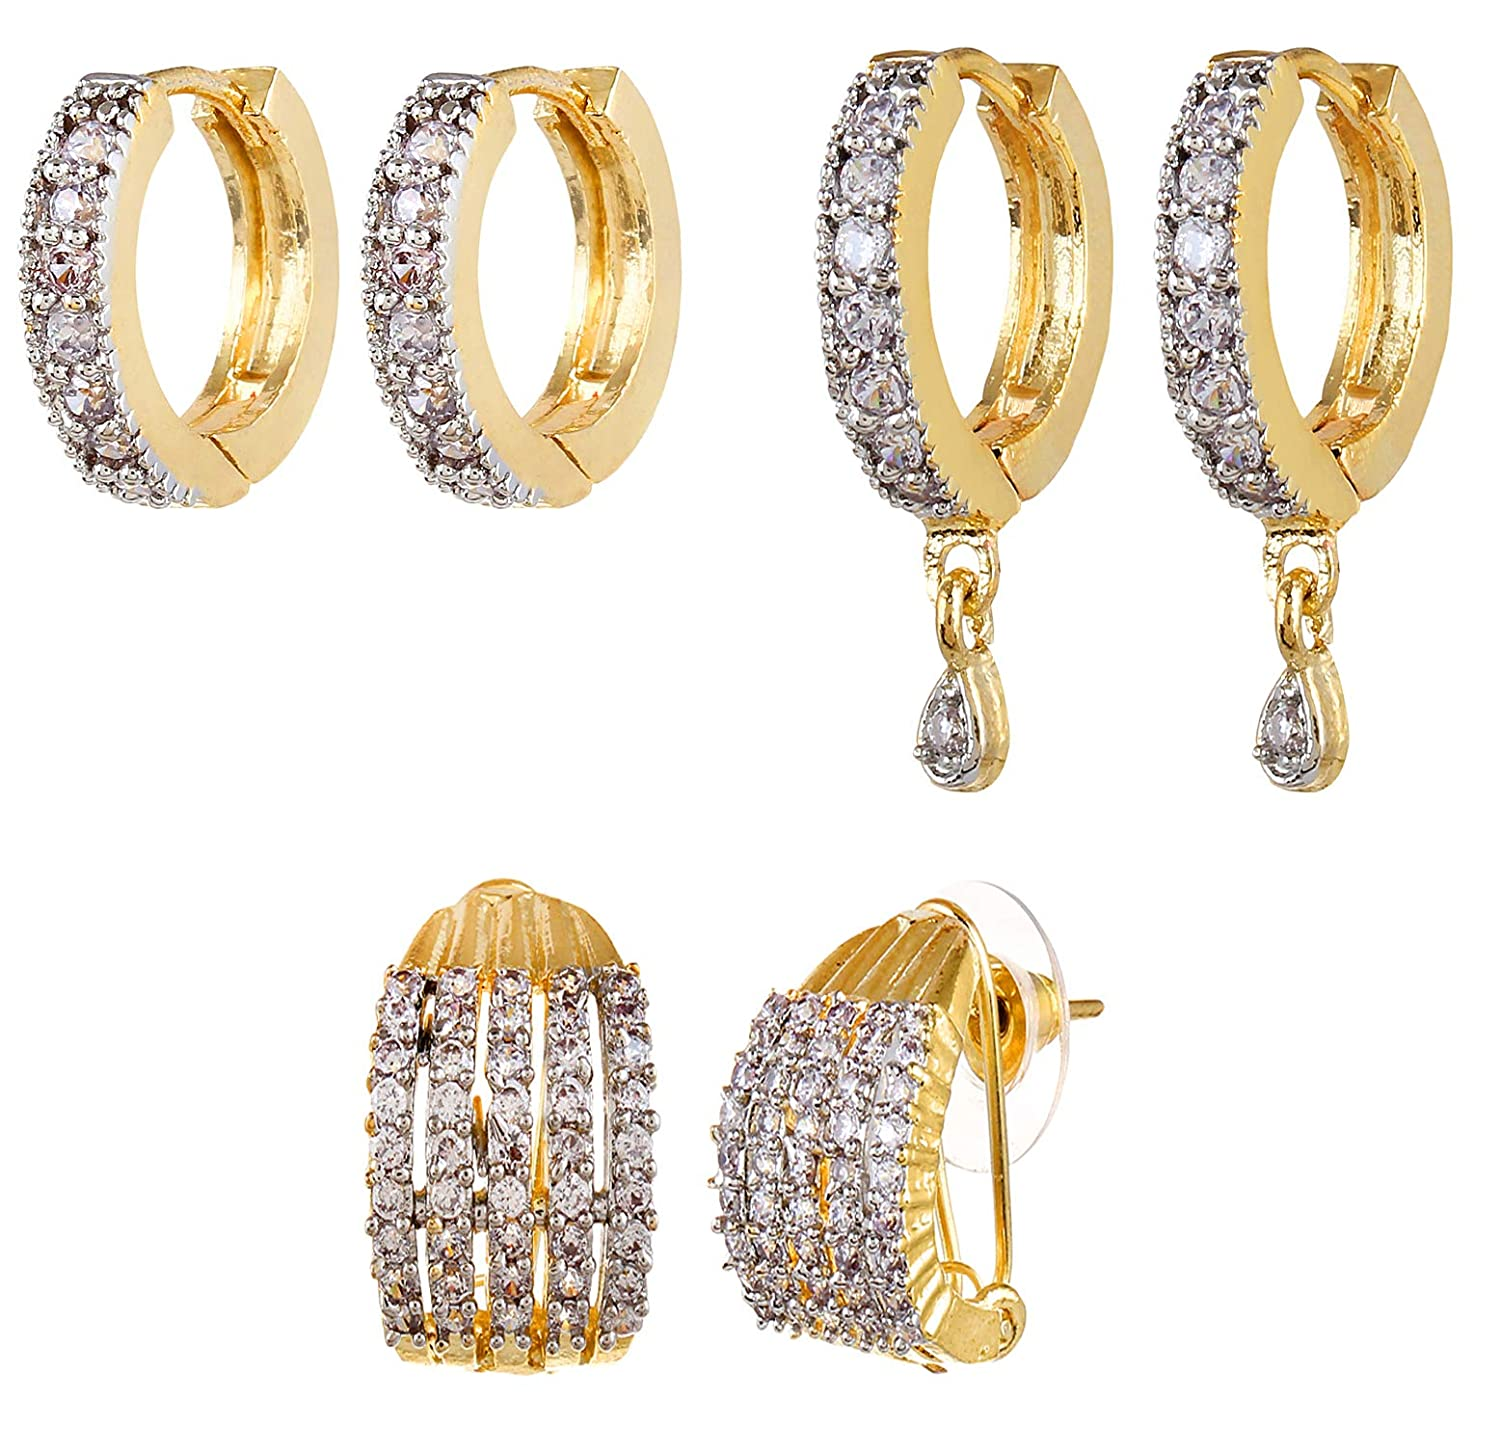 52112f50d YouBella Stylish Party Wear Jewellery Gold Plated and American Diamond  Studs Earrings for Women (Golden)(YBECB_08_FON): Amazon.in: Jewellery